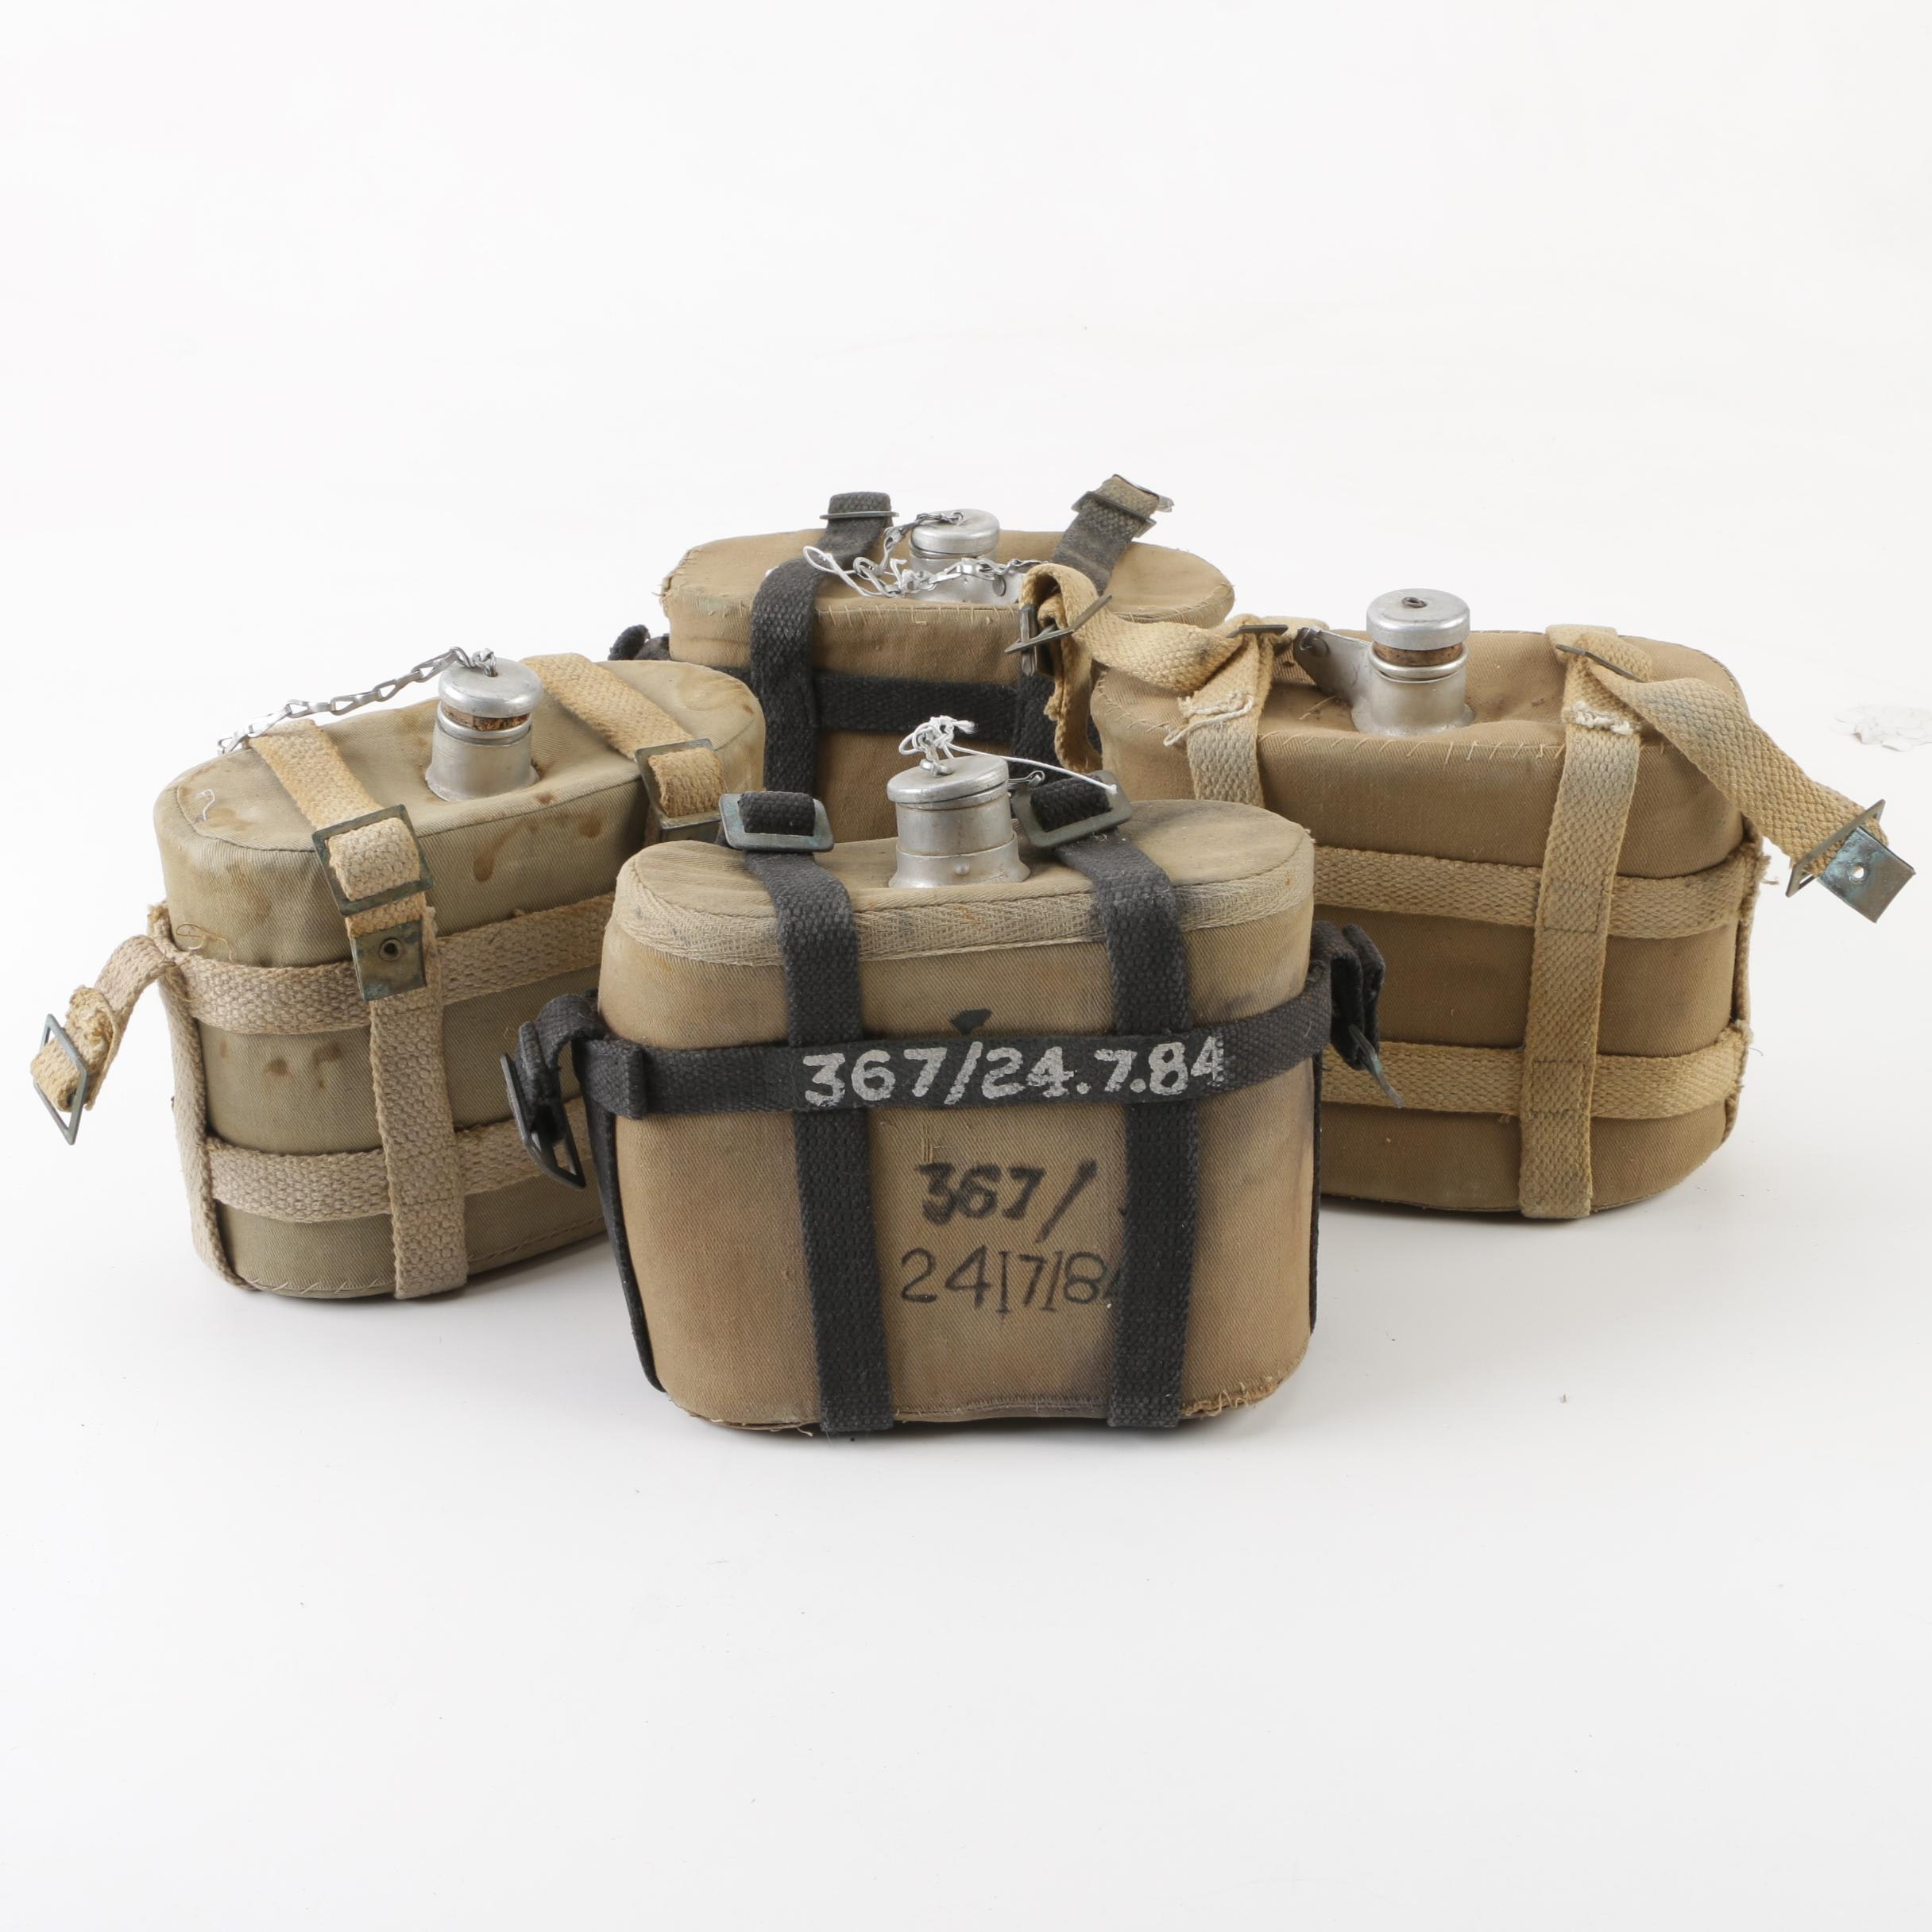 Canvas Wrapped Military Canteens, 20th Century